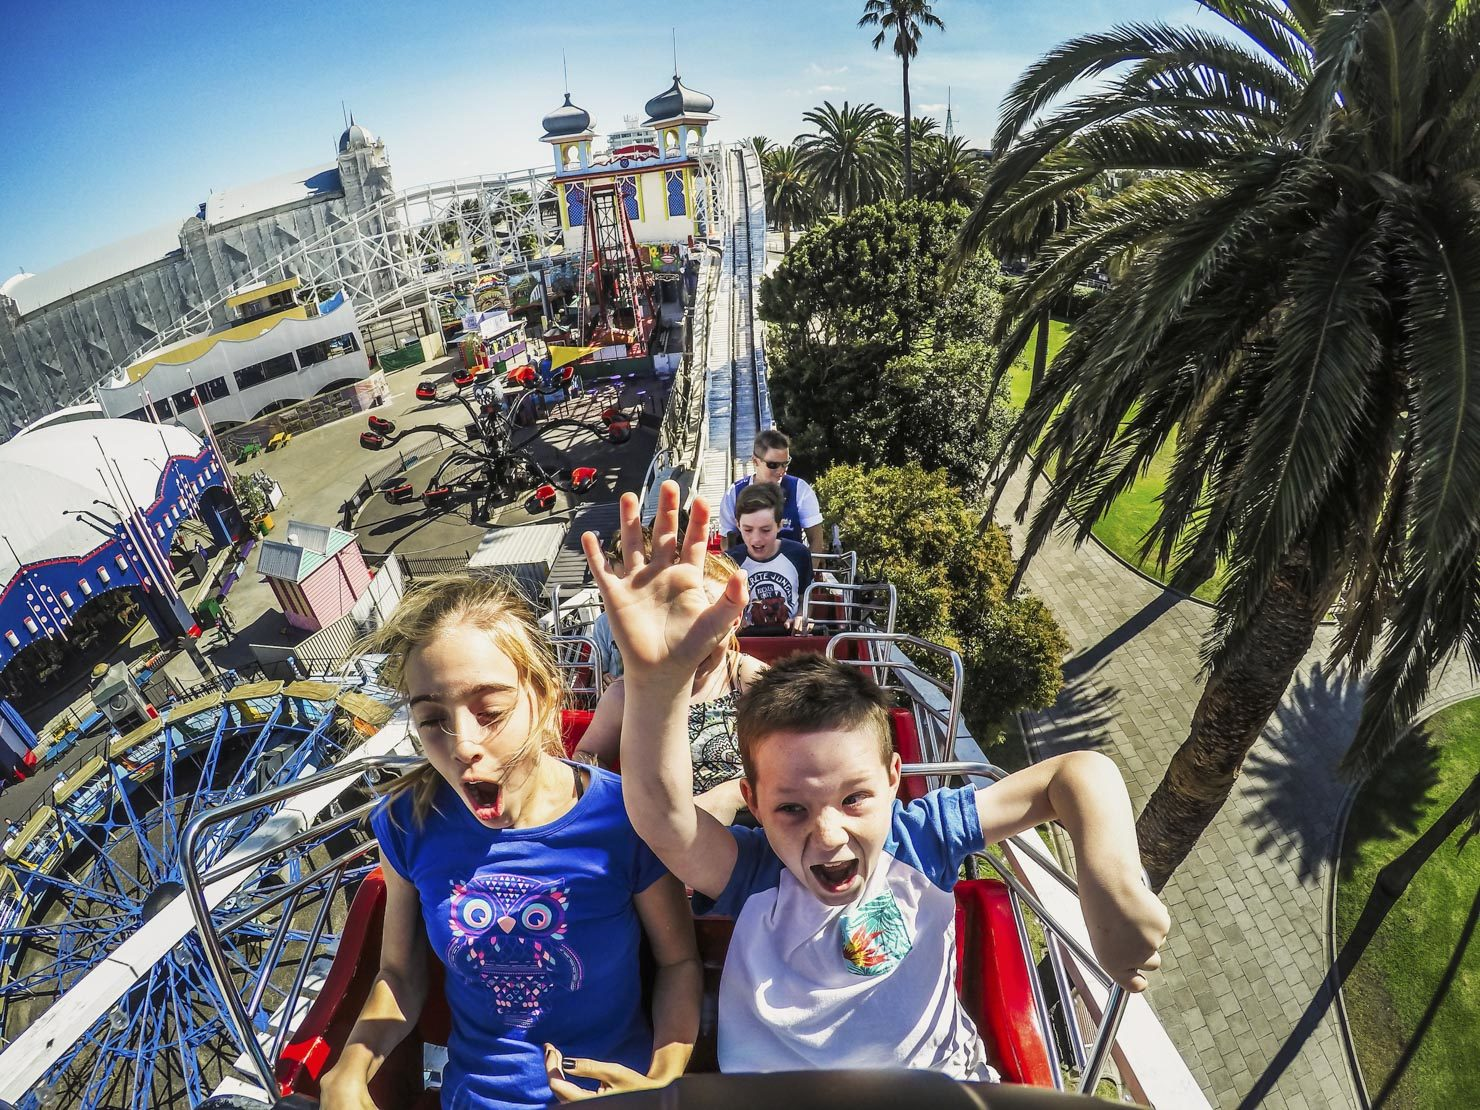 Luna Park kids on roller coaster ride